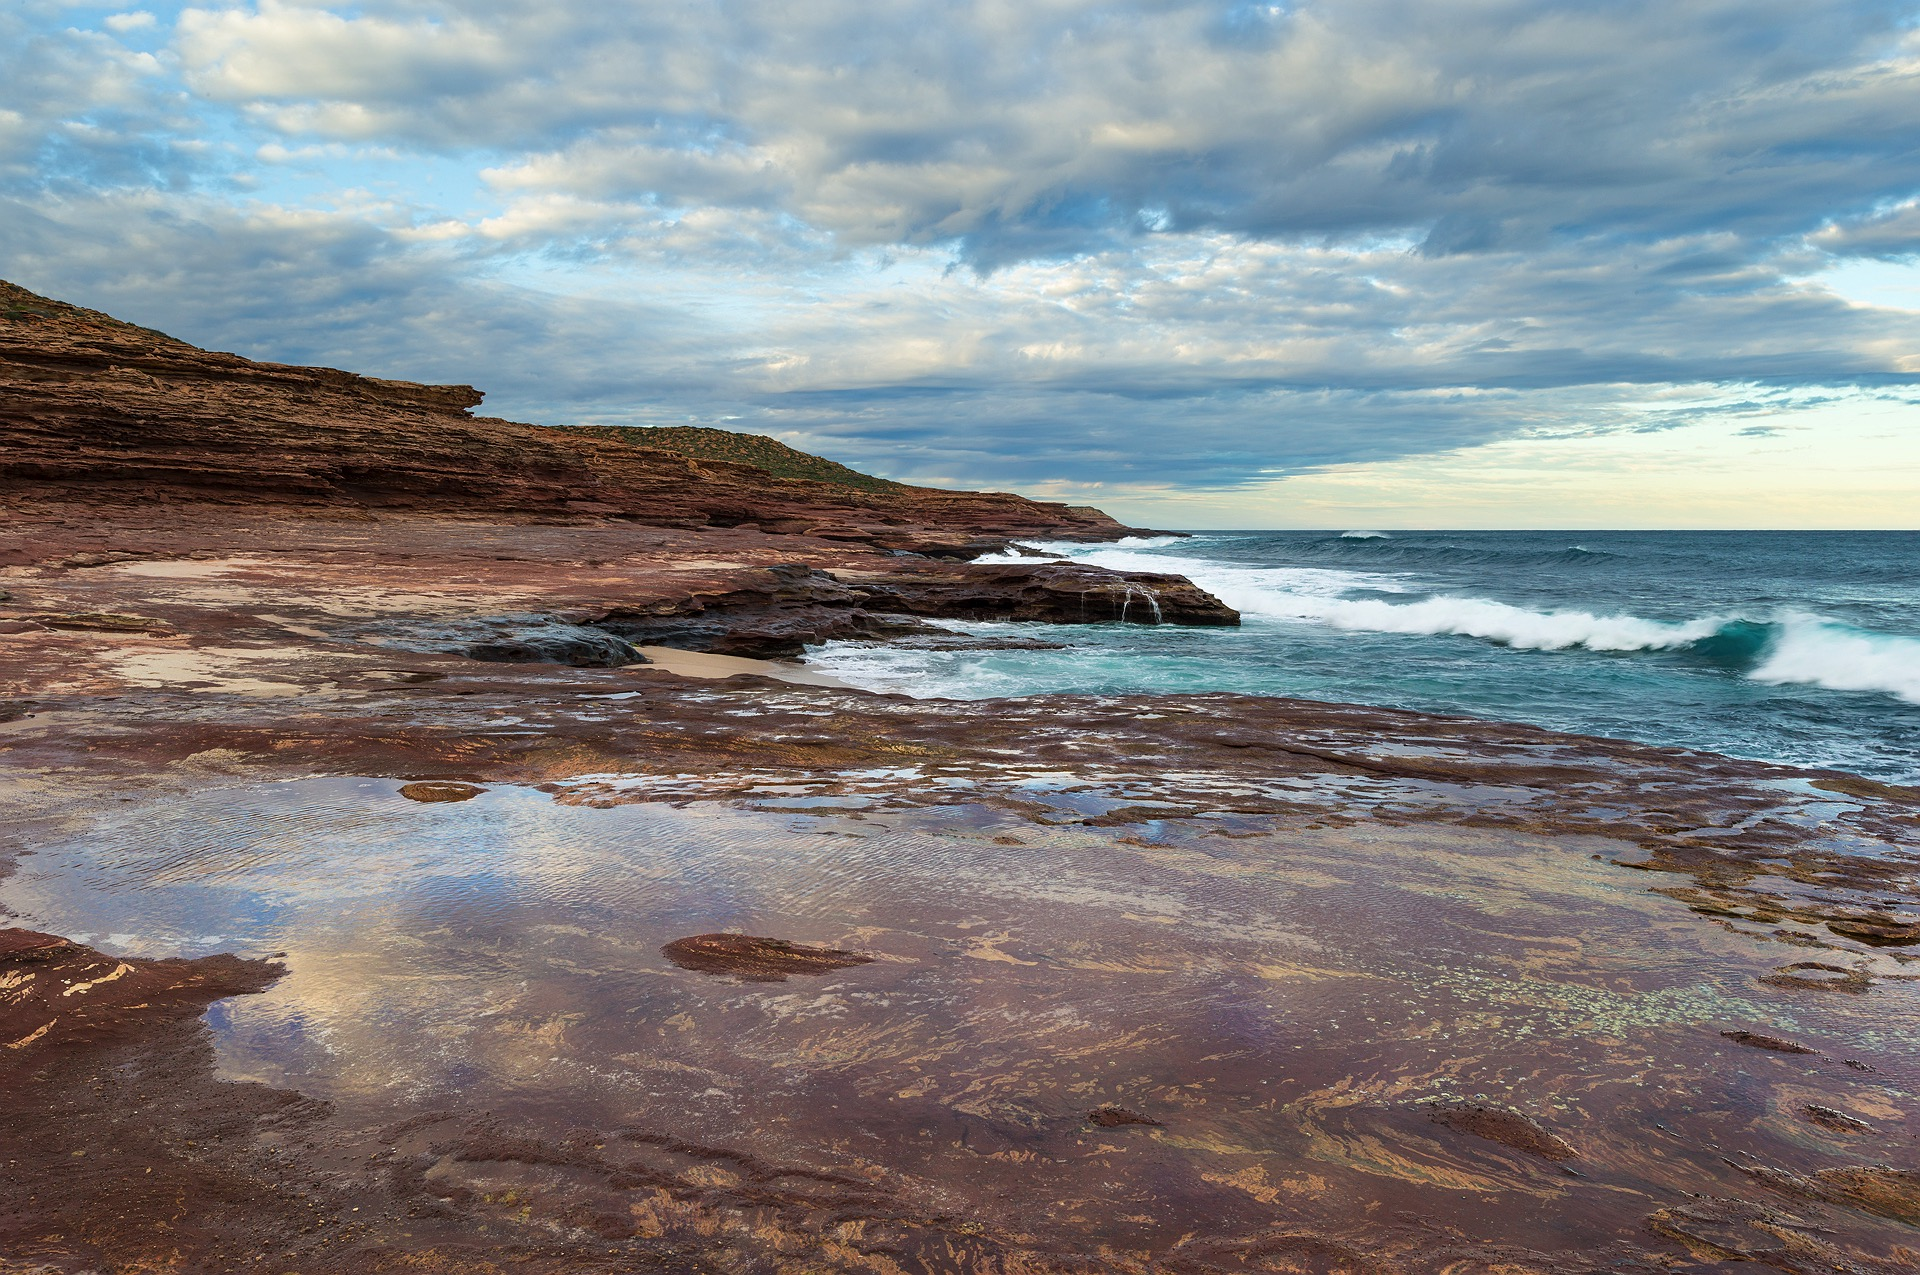 kalbarri_coastal_cliffs_06